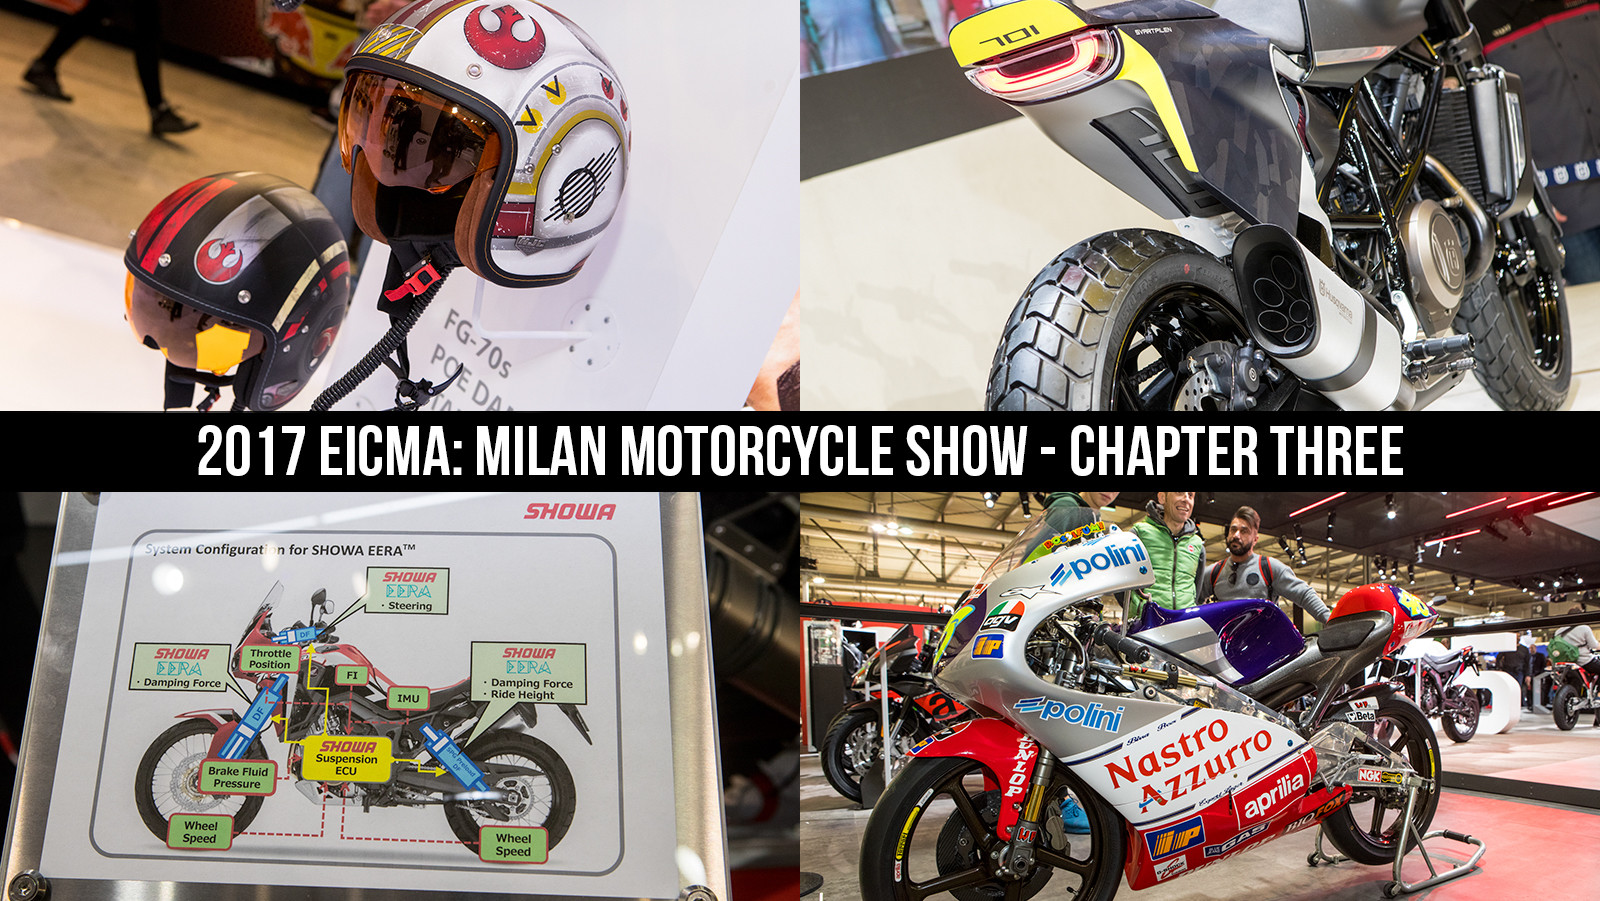 2017 EICMA - Milan Motorcycle Show: Chapter Three - 2017 EICMA - Milan Motorcycle Show: Chapter Three - Motocross Pictures - Vital MX